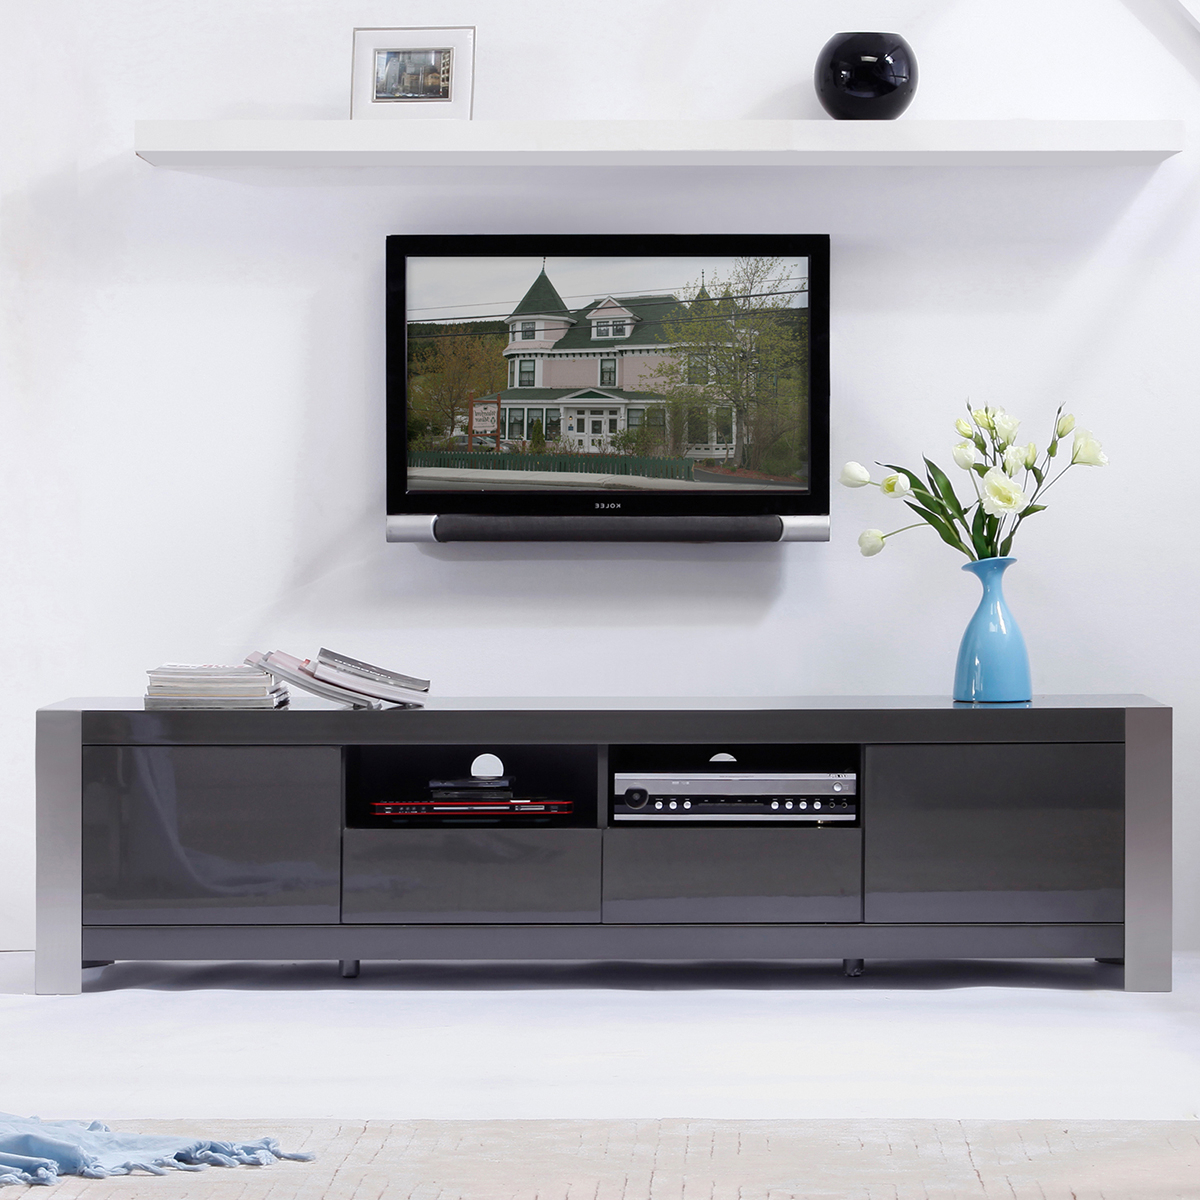 Red Gloss Tv Stands Regarding Best And Newest Tv Television Stands 71 & Wider (Gallery 13 of 20)